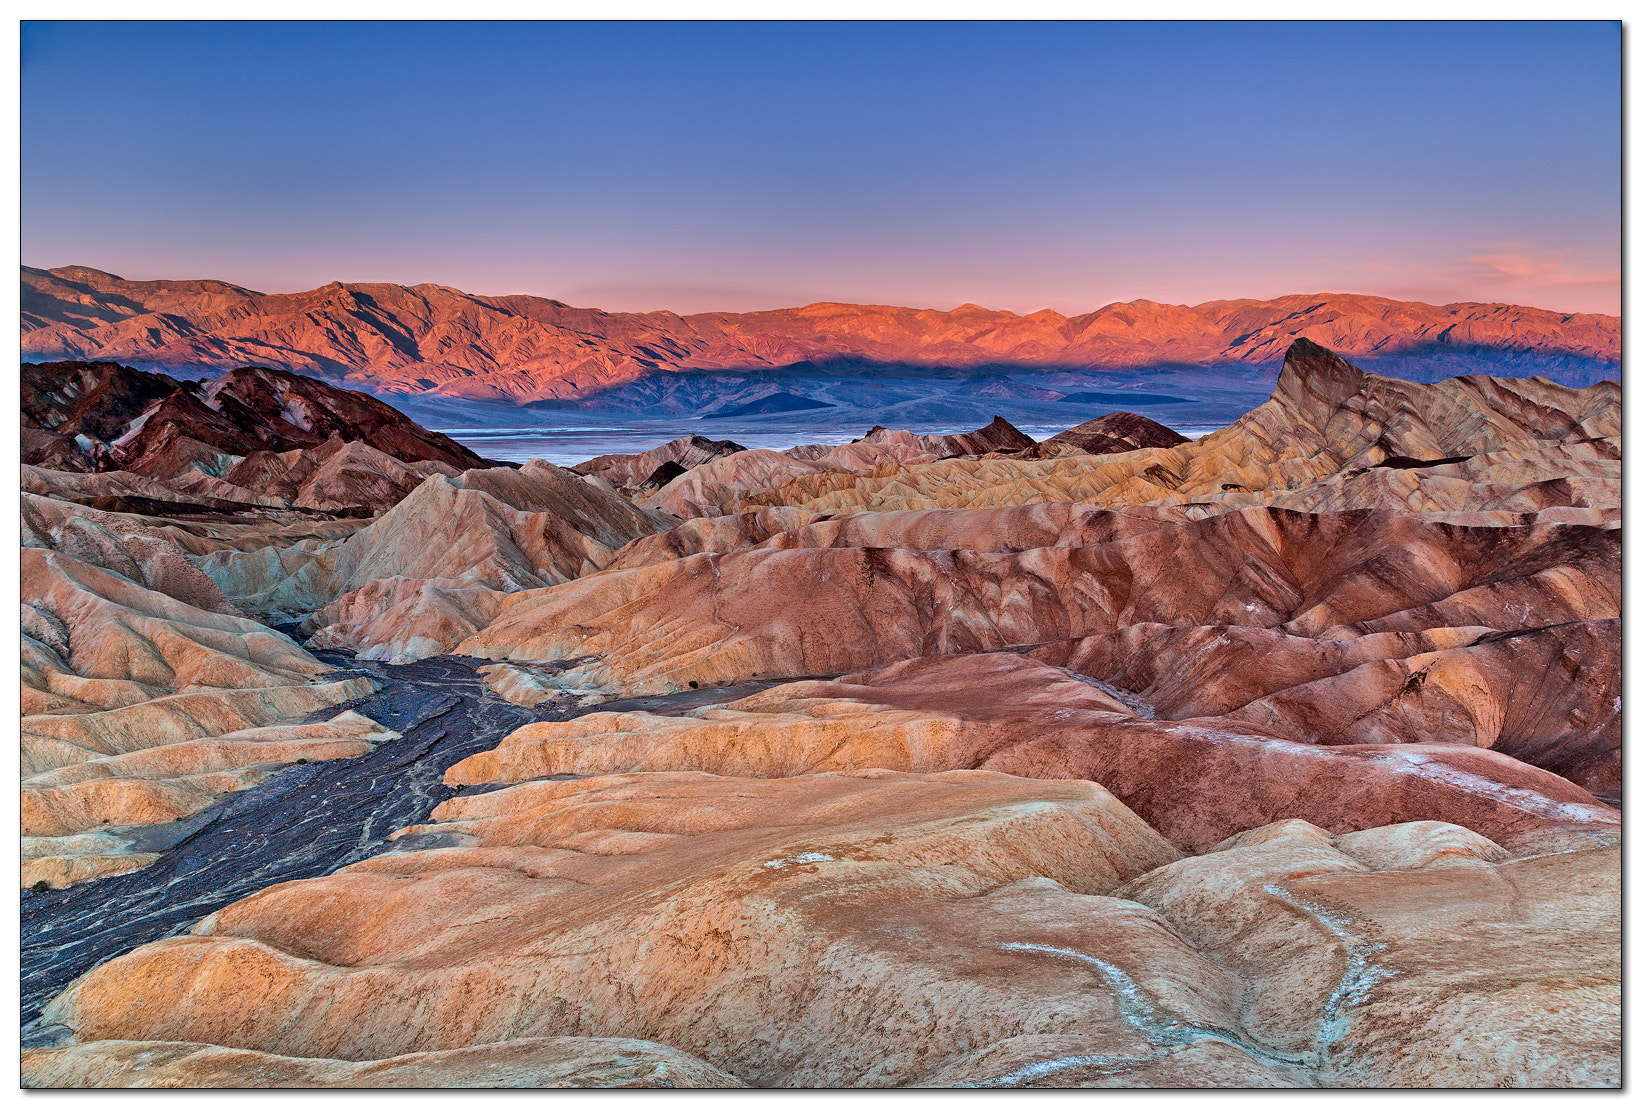 Photograph Zabriske Point, Death Valley NP by Jameel Hyder on 500px